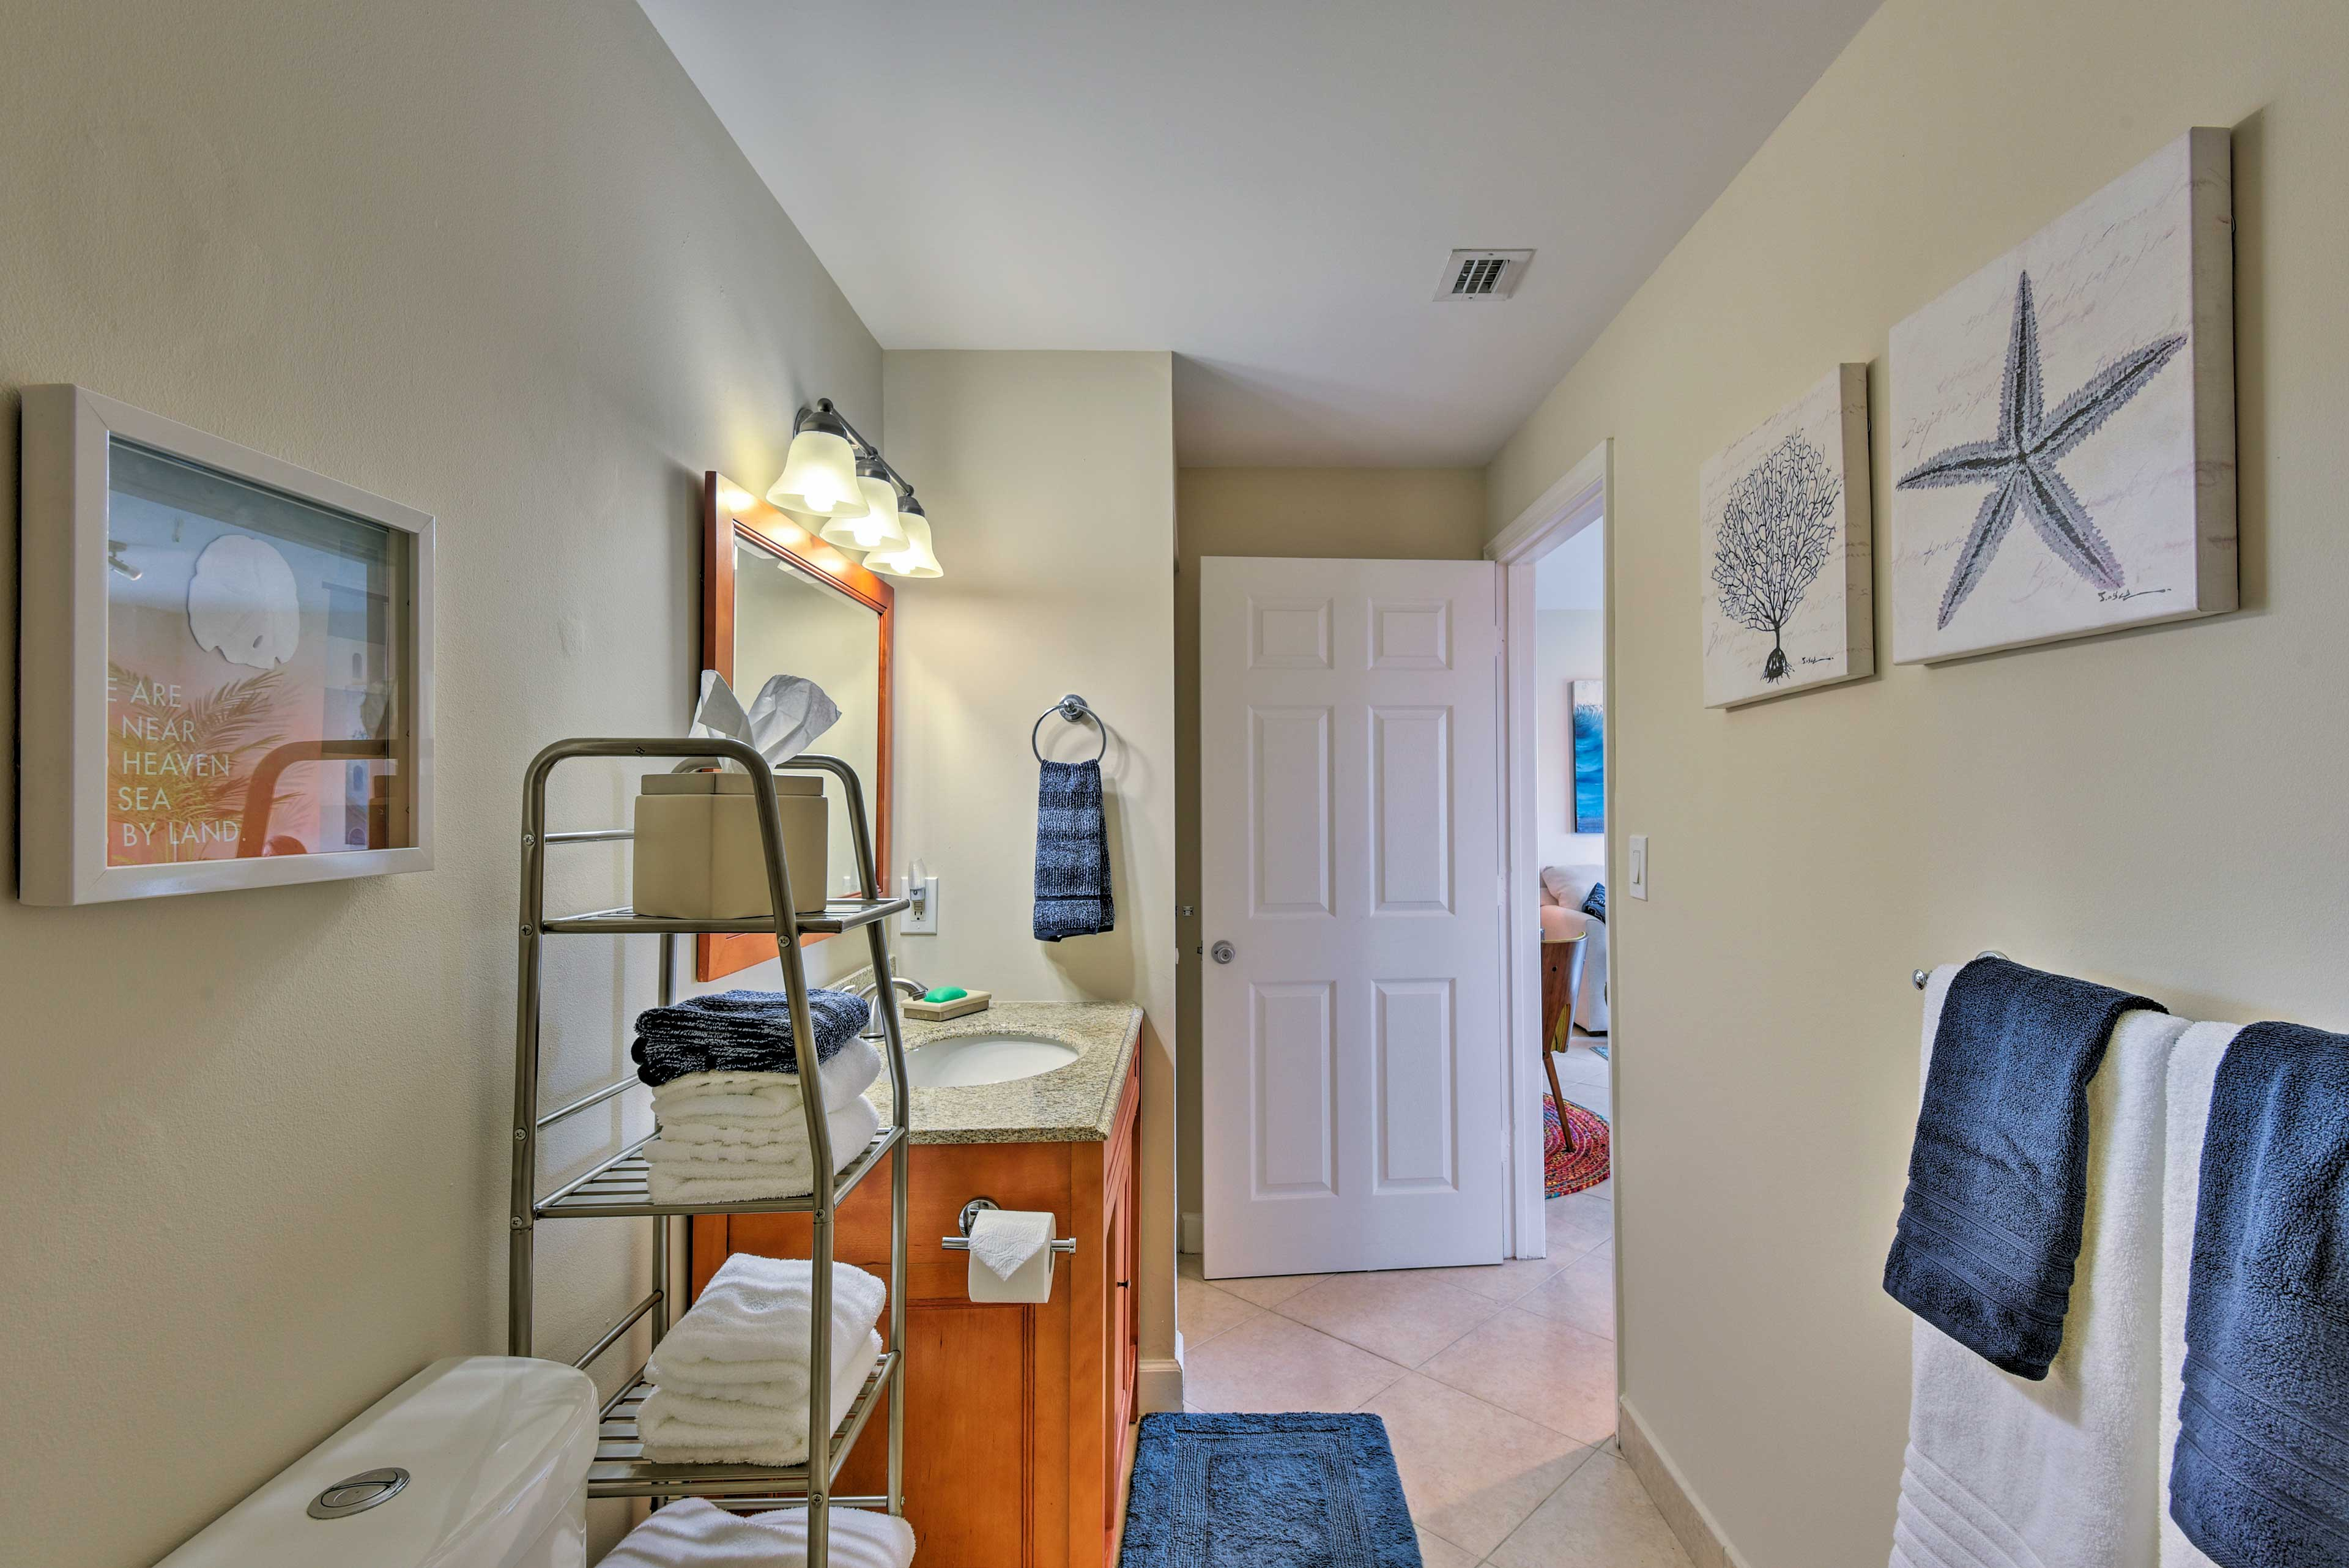 Linens and towels are provided for added convenience.